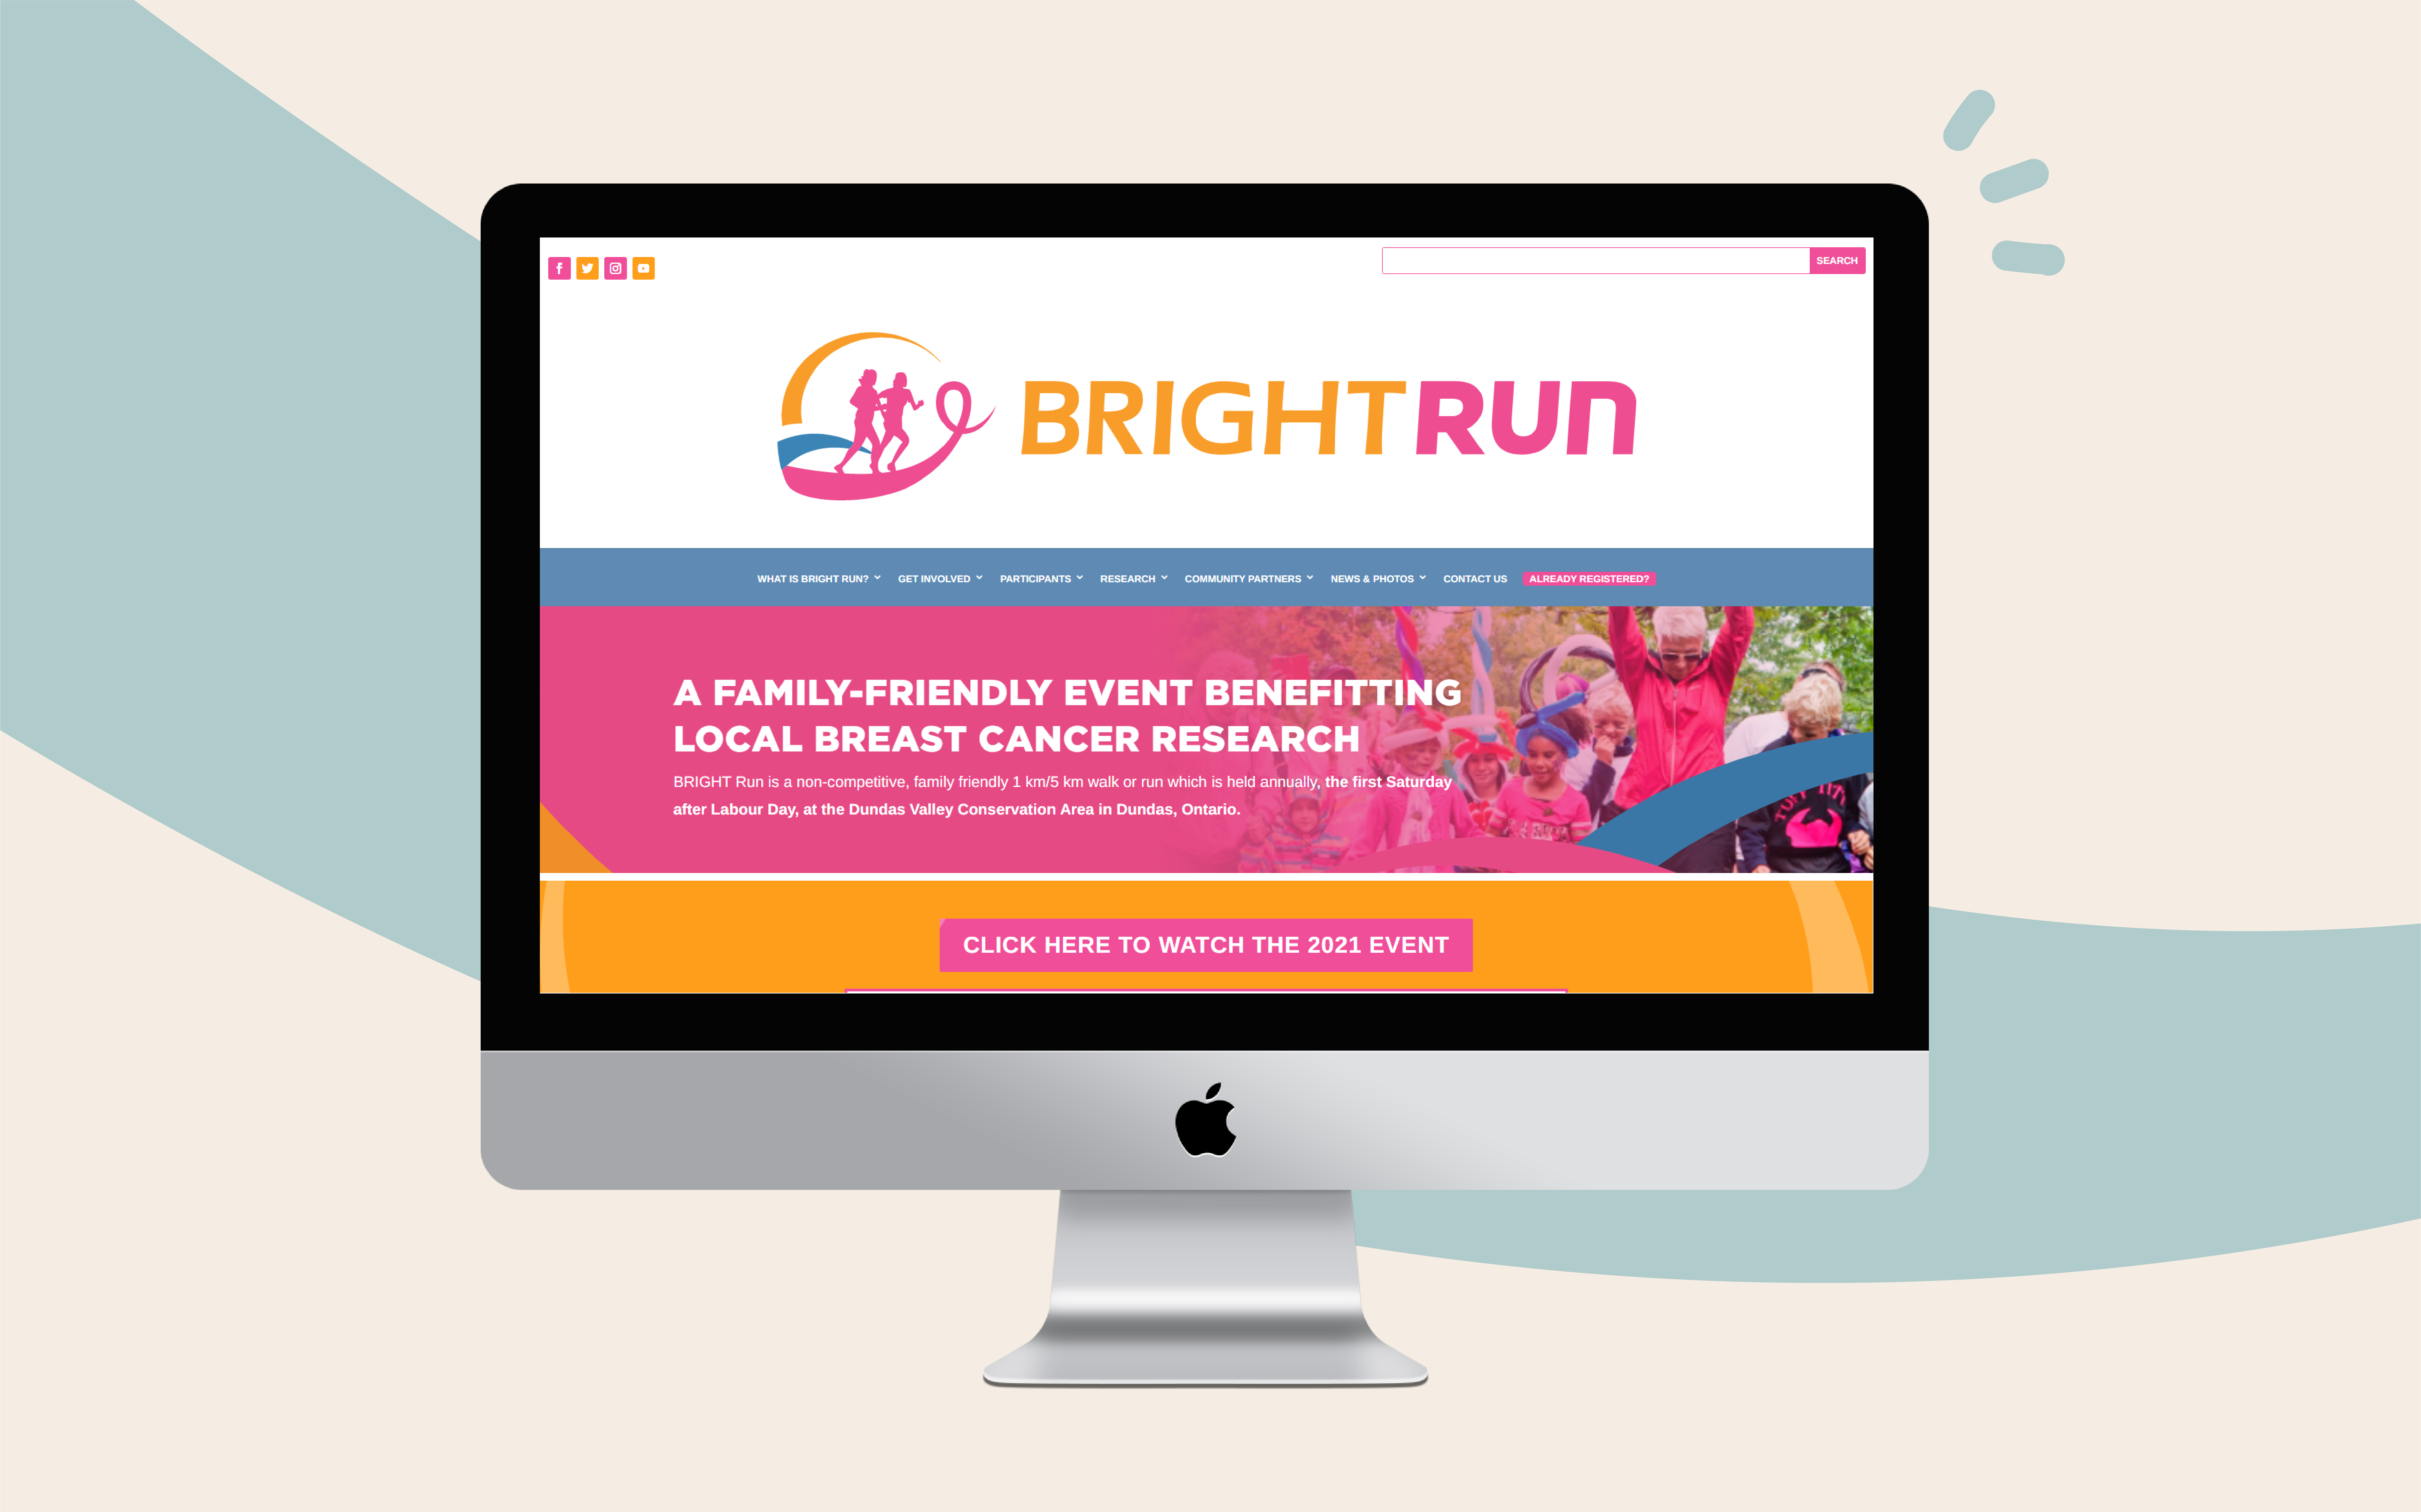 BRIGHT Run raises over $369,000 for local breast cancer research